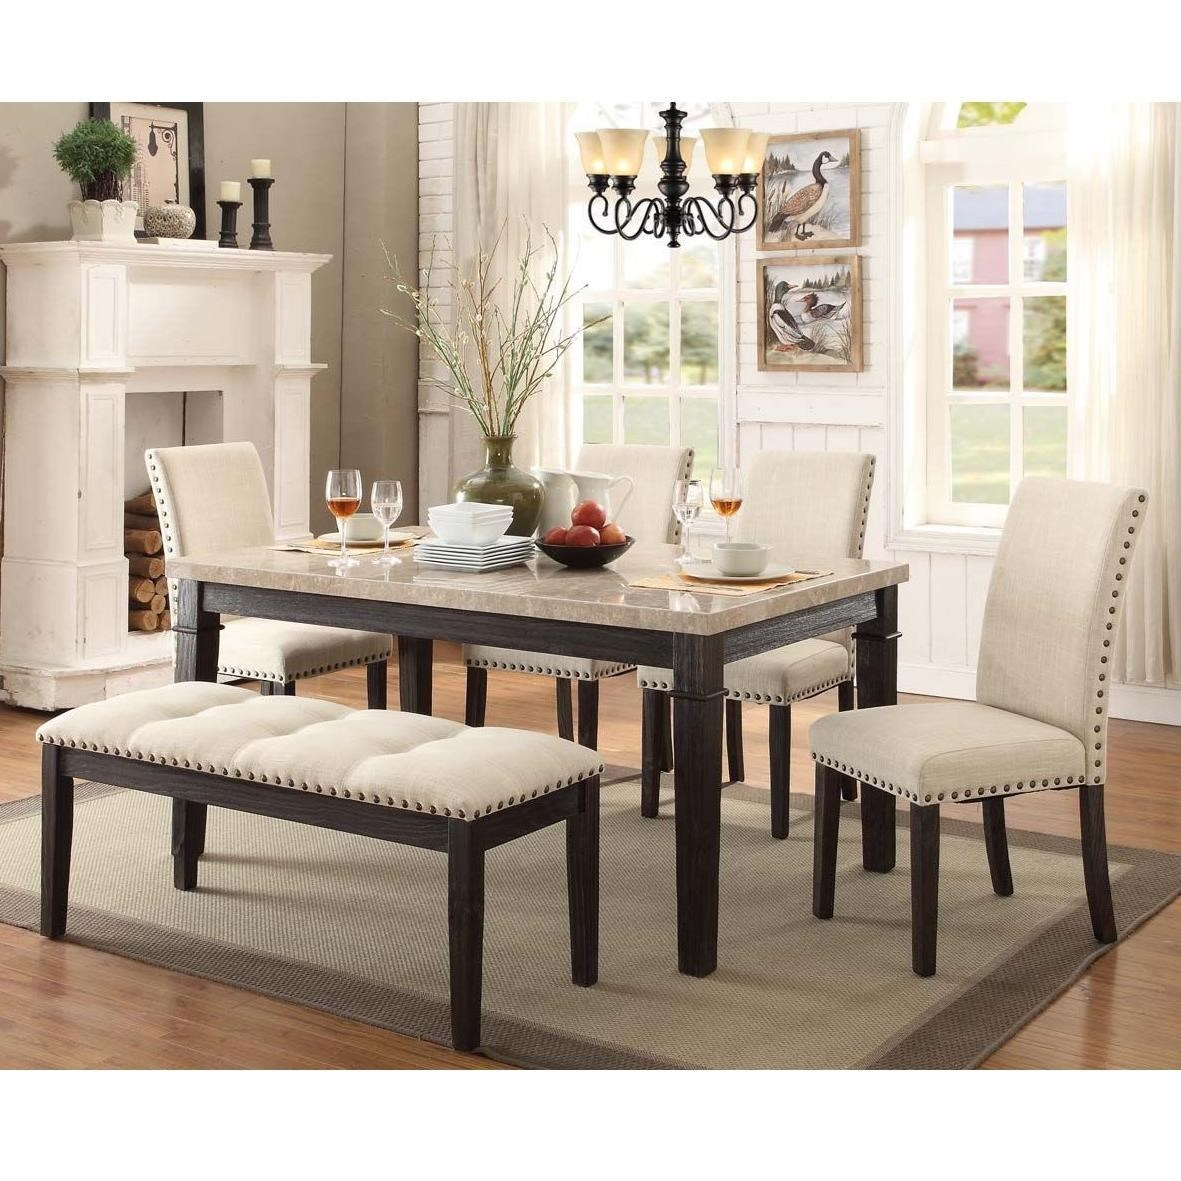 dining room table with upholstered bench. Elements International GreystoneTable And Chair Set With Bench Dining Room Table Upholstered T